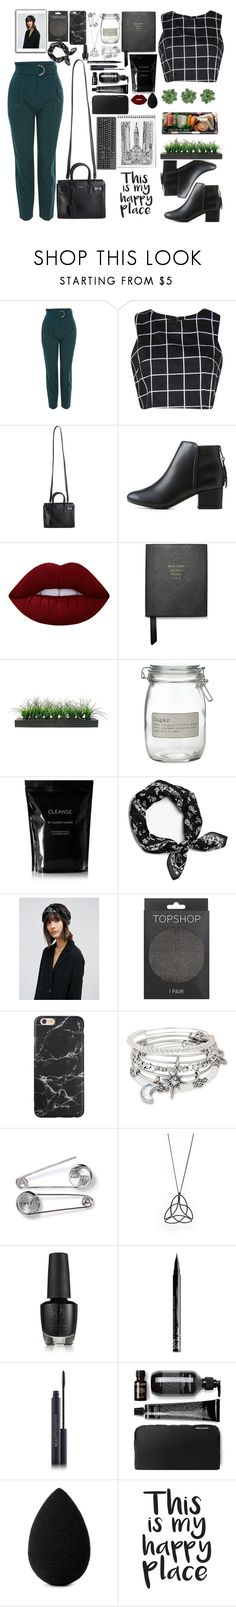 """""""Untitled #222"""" by edelintess on Polyvore featuring Topshop, Boohoo, Yves Saint Laurent, City Classified, Lime Crime, Smythson, Vintage, J by Jasper Conran, Jura and Cleanse by Lauren Napier"""